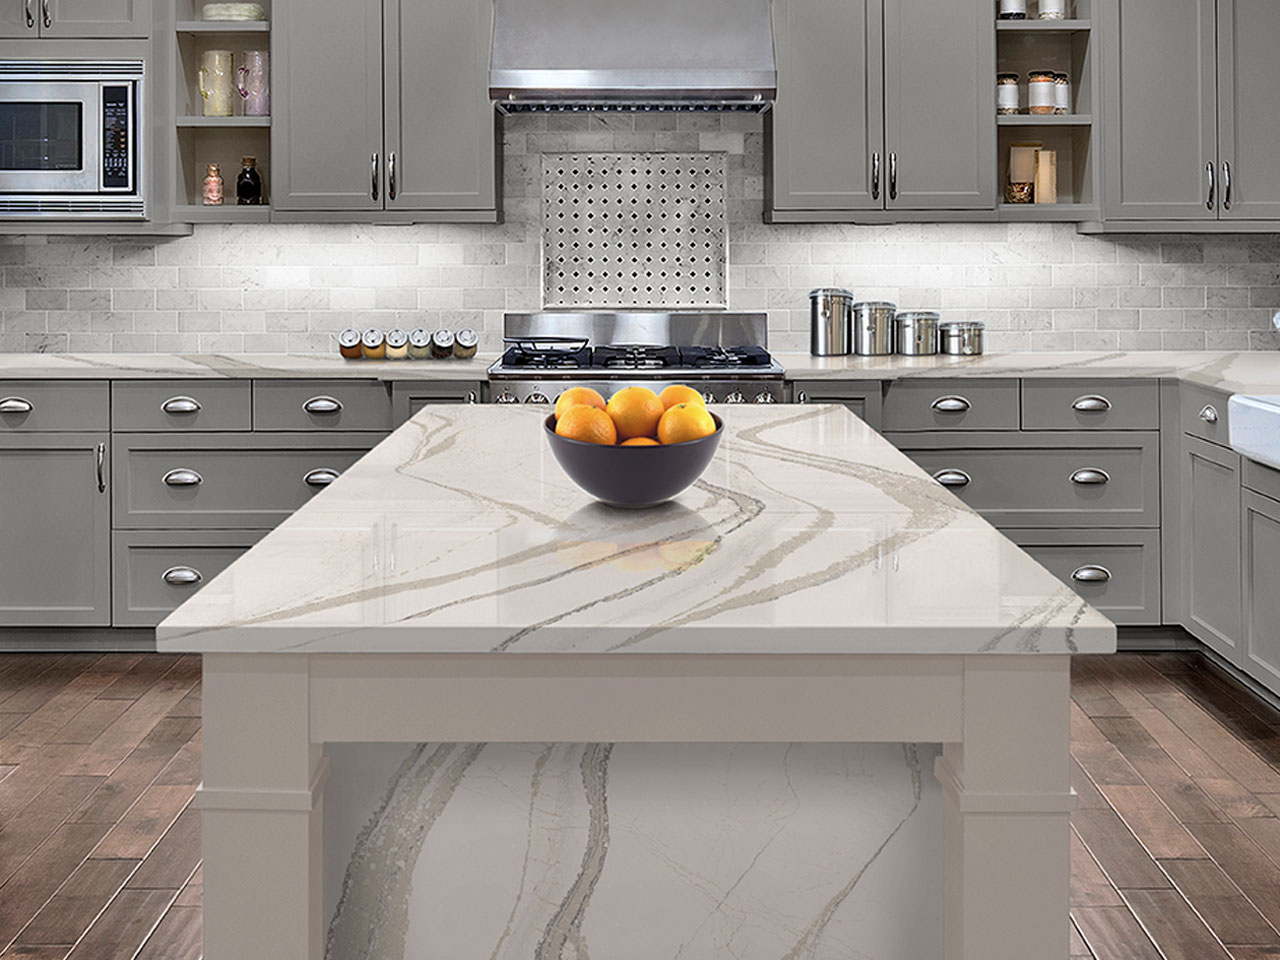 believe satisfaction granite even to quartz we attention what pricing set tiniest countertop in disposition difference a stone standards prices solutions alloworigin details that and our countertops of makes high customer accesskeyid is the paying